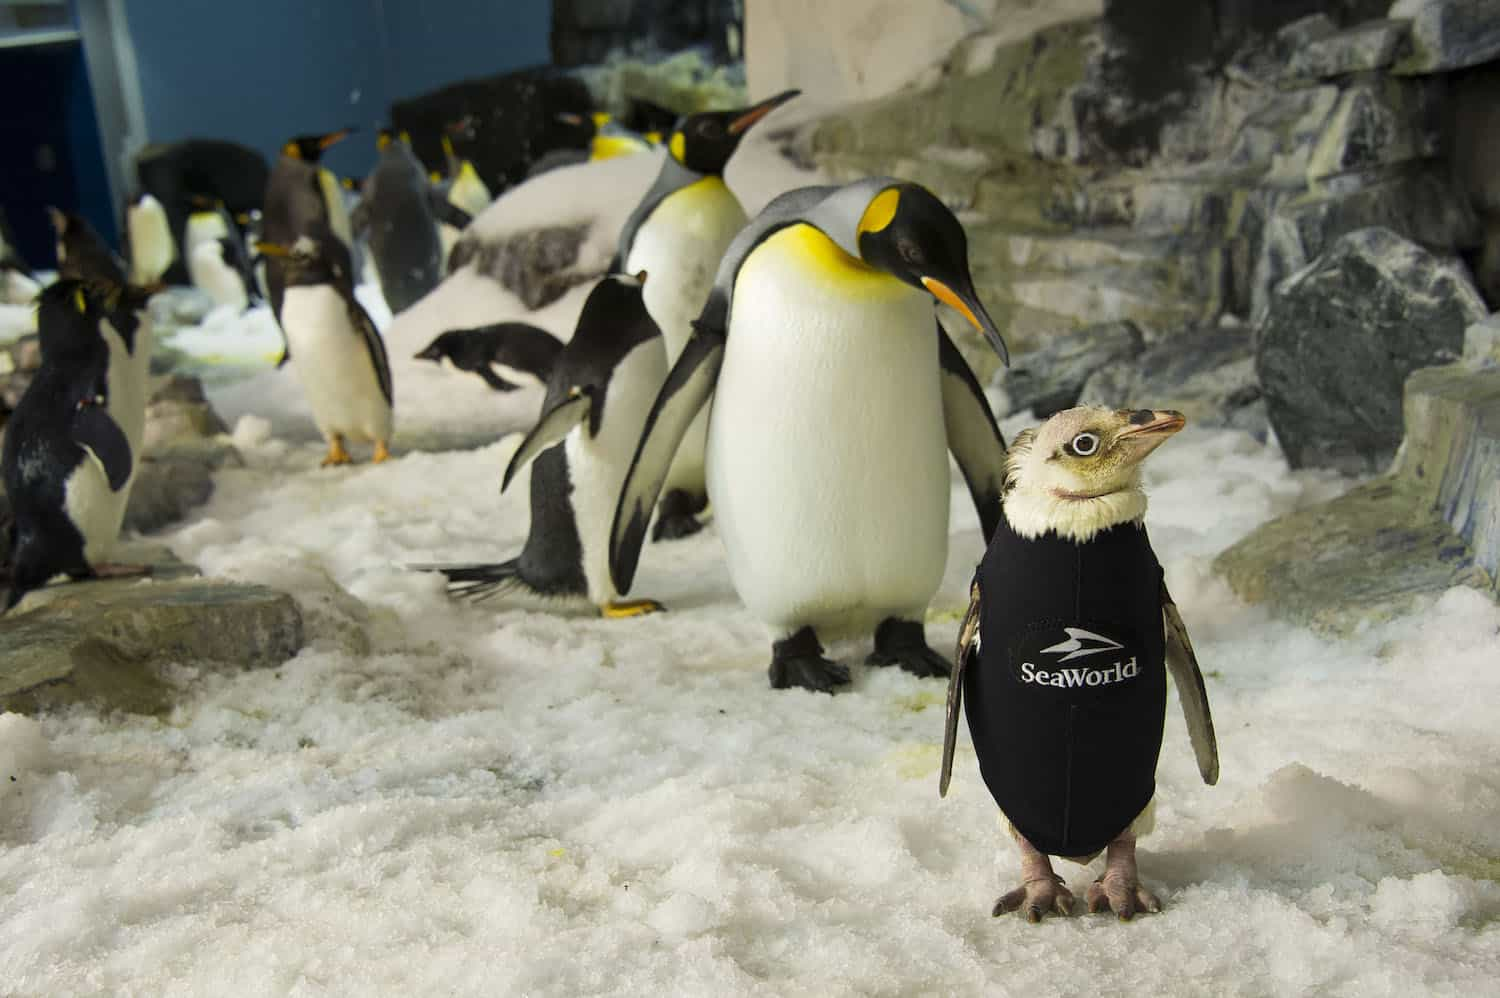 Special wetsuit keeps penguin without feathers warm